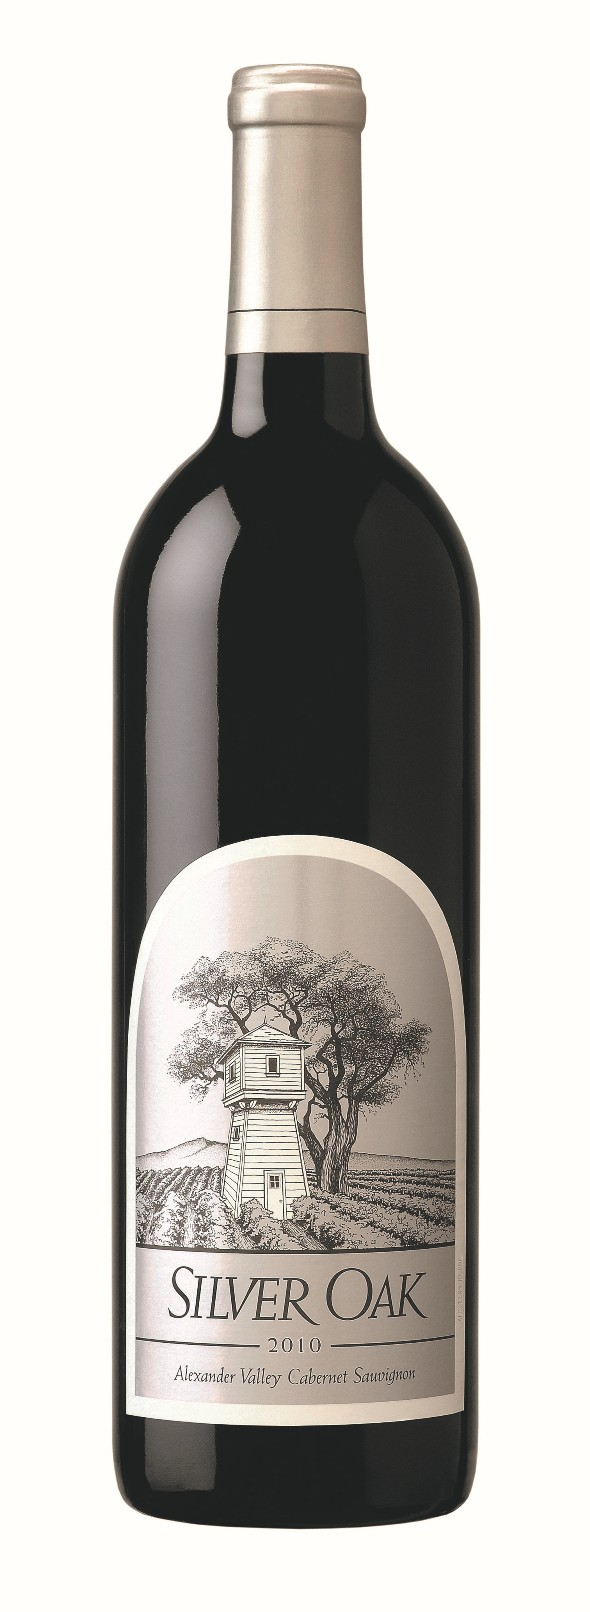 Silver Oak Cabernet Sauvignon Alexander Valley 2010,  () from The BPW - Merchants of rare and fine wines.